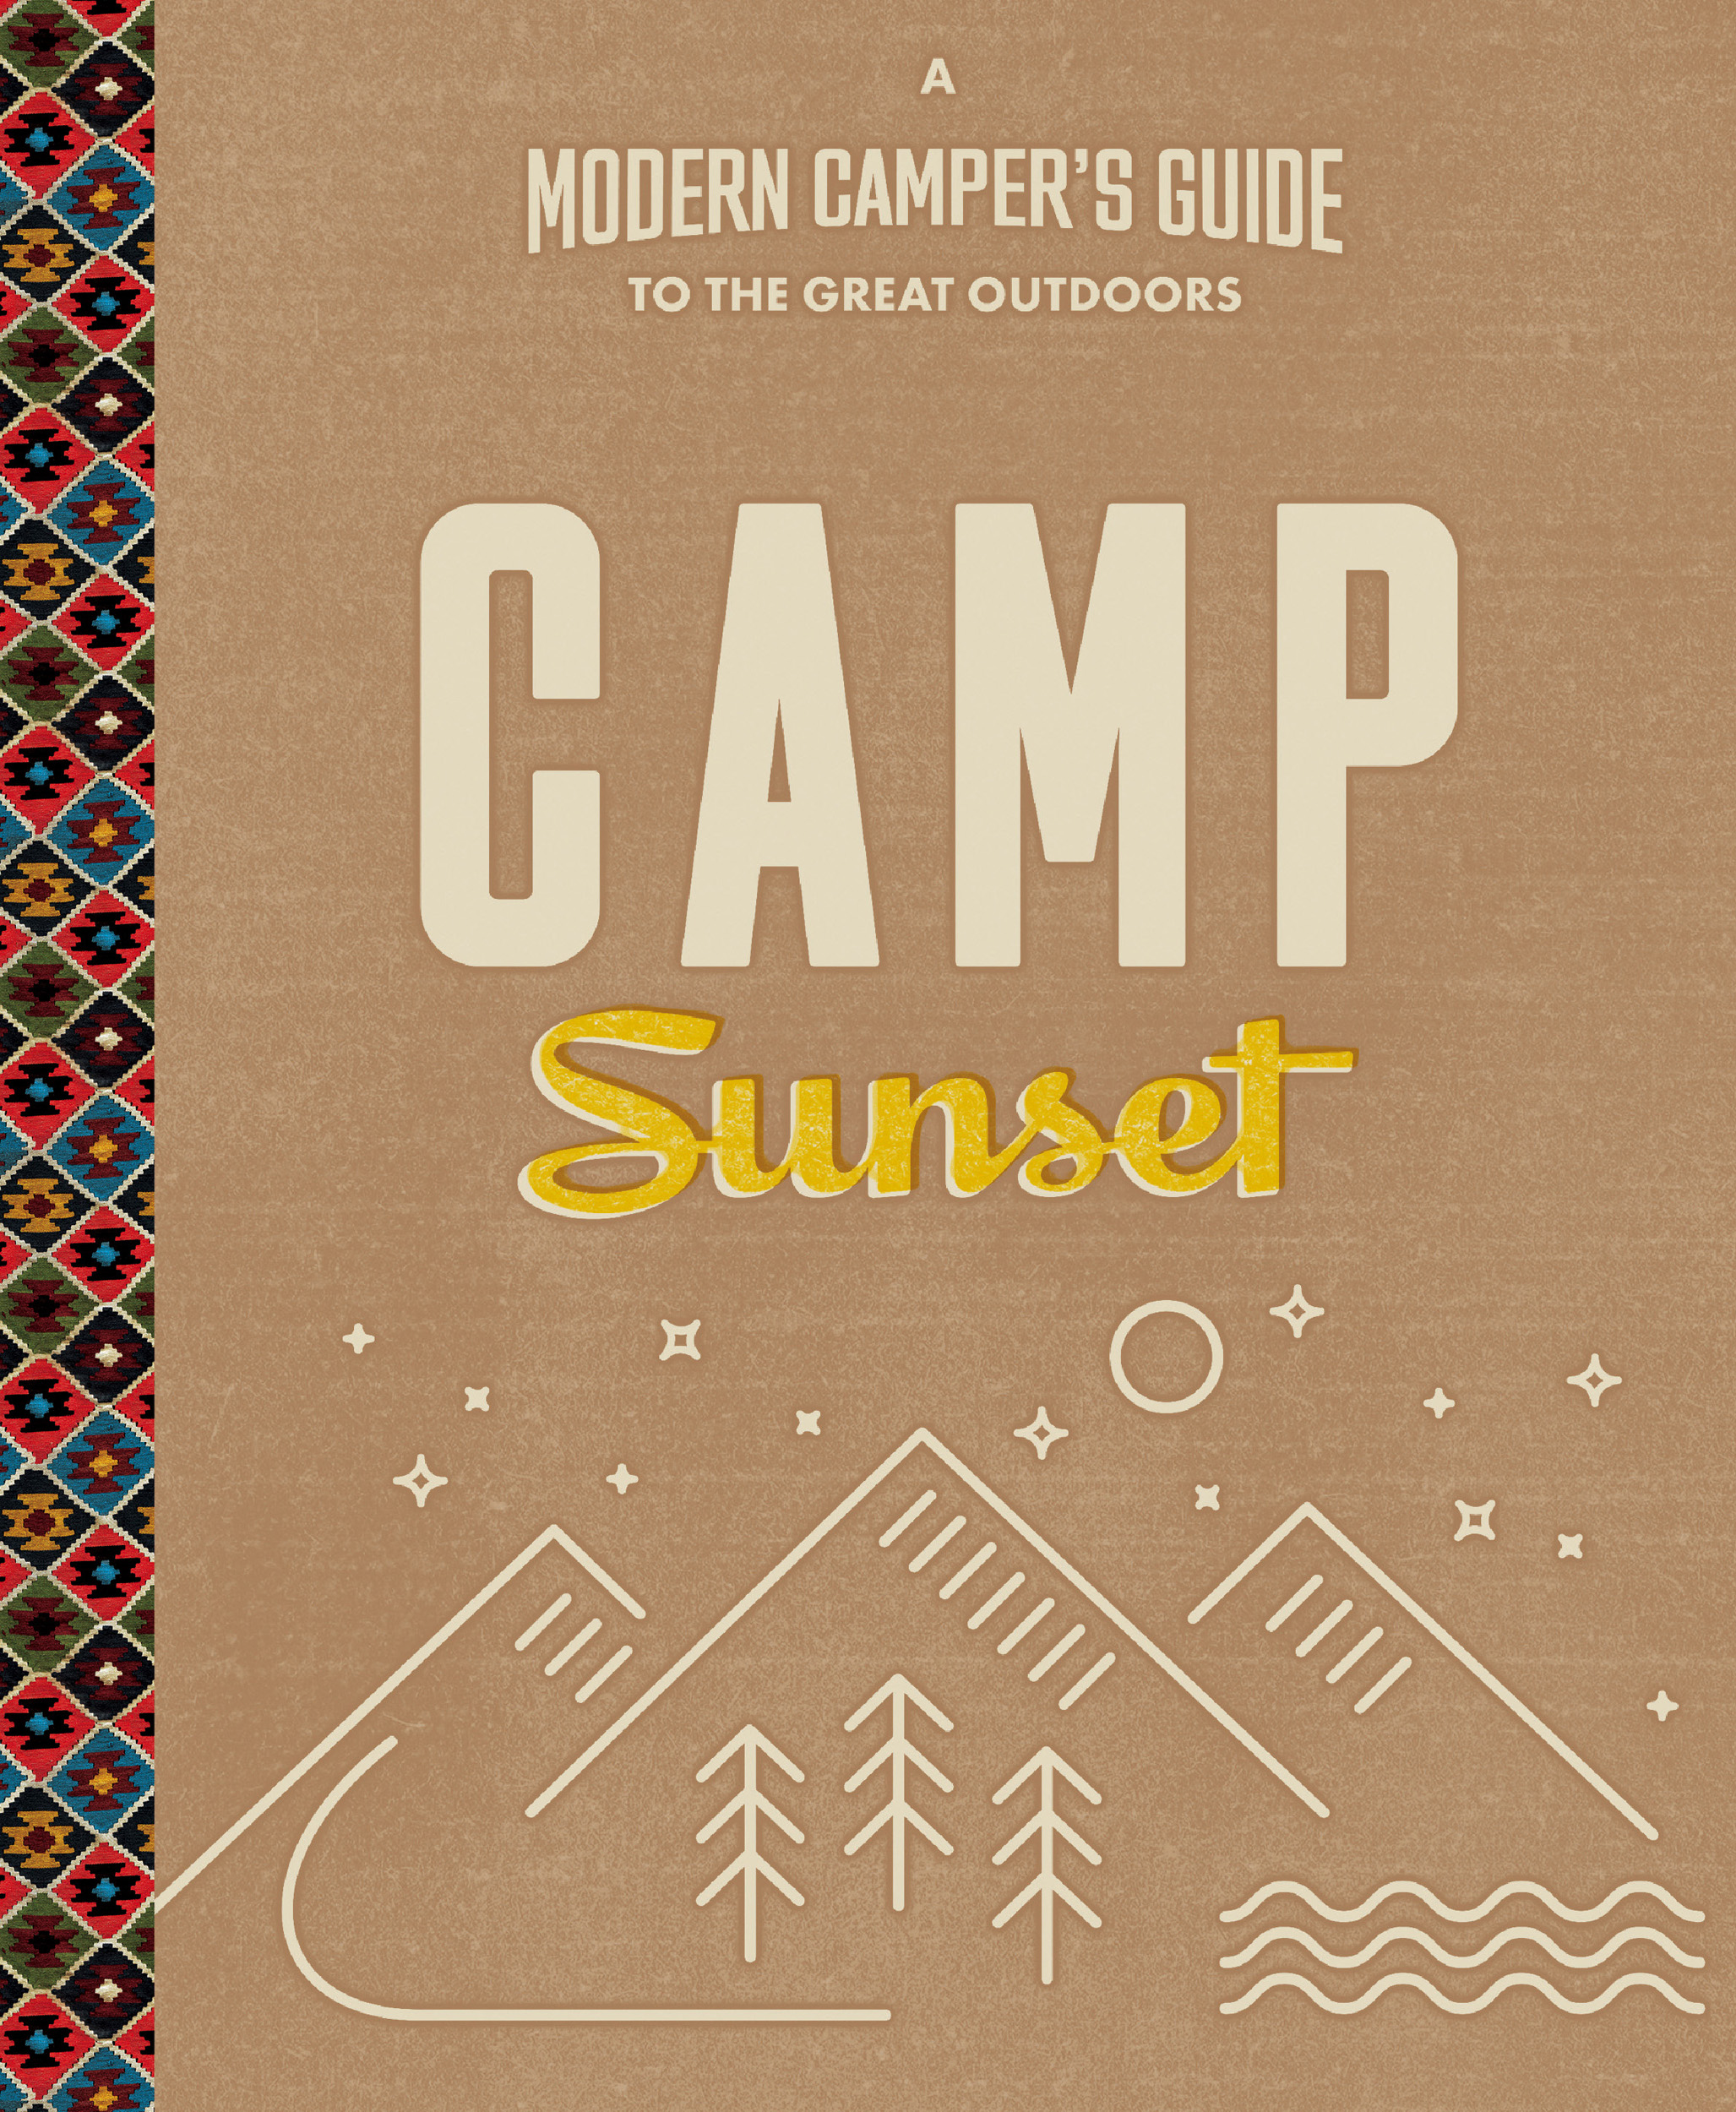 Camp Sunset A Modern Camper's Guide to the Great Outdoors